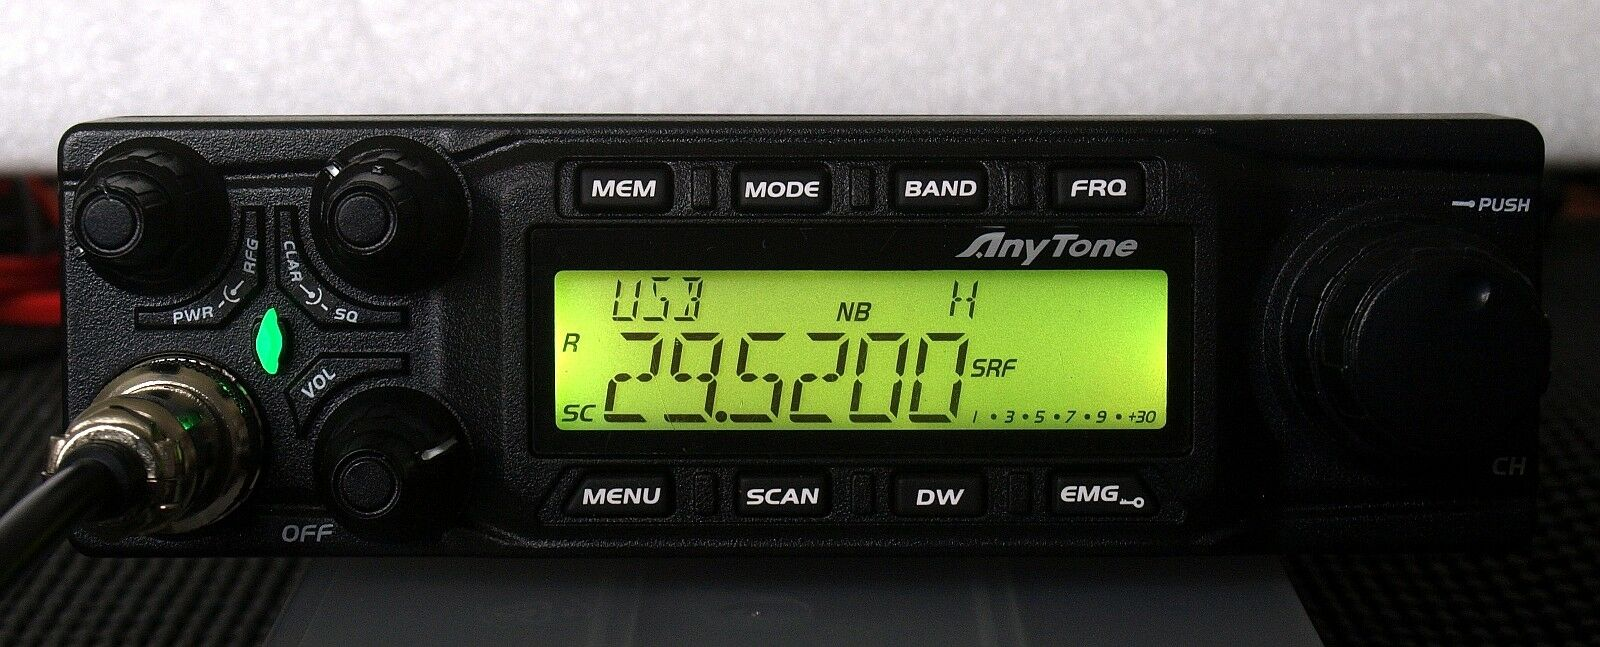 Anytone AT 6666 10 meter mobile Radio AM FM USB LSB  PA - with CTC Board. Buy it now for 235.00